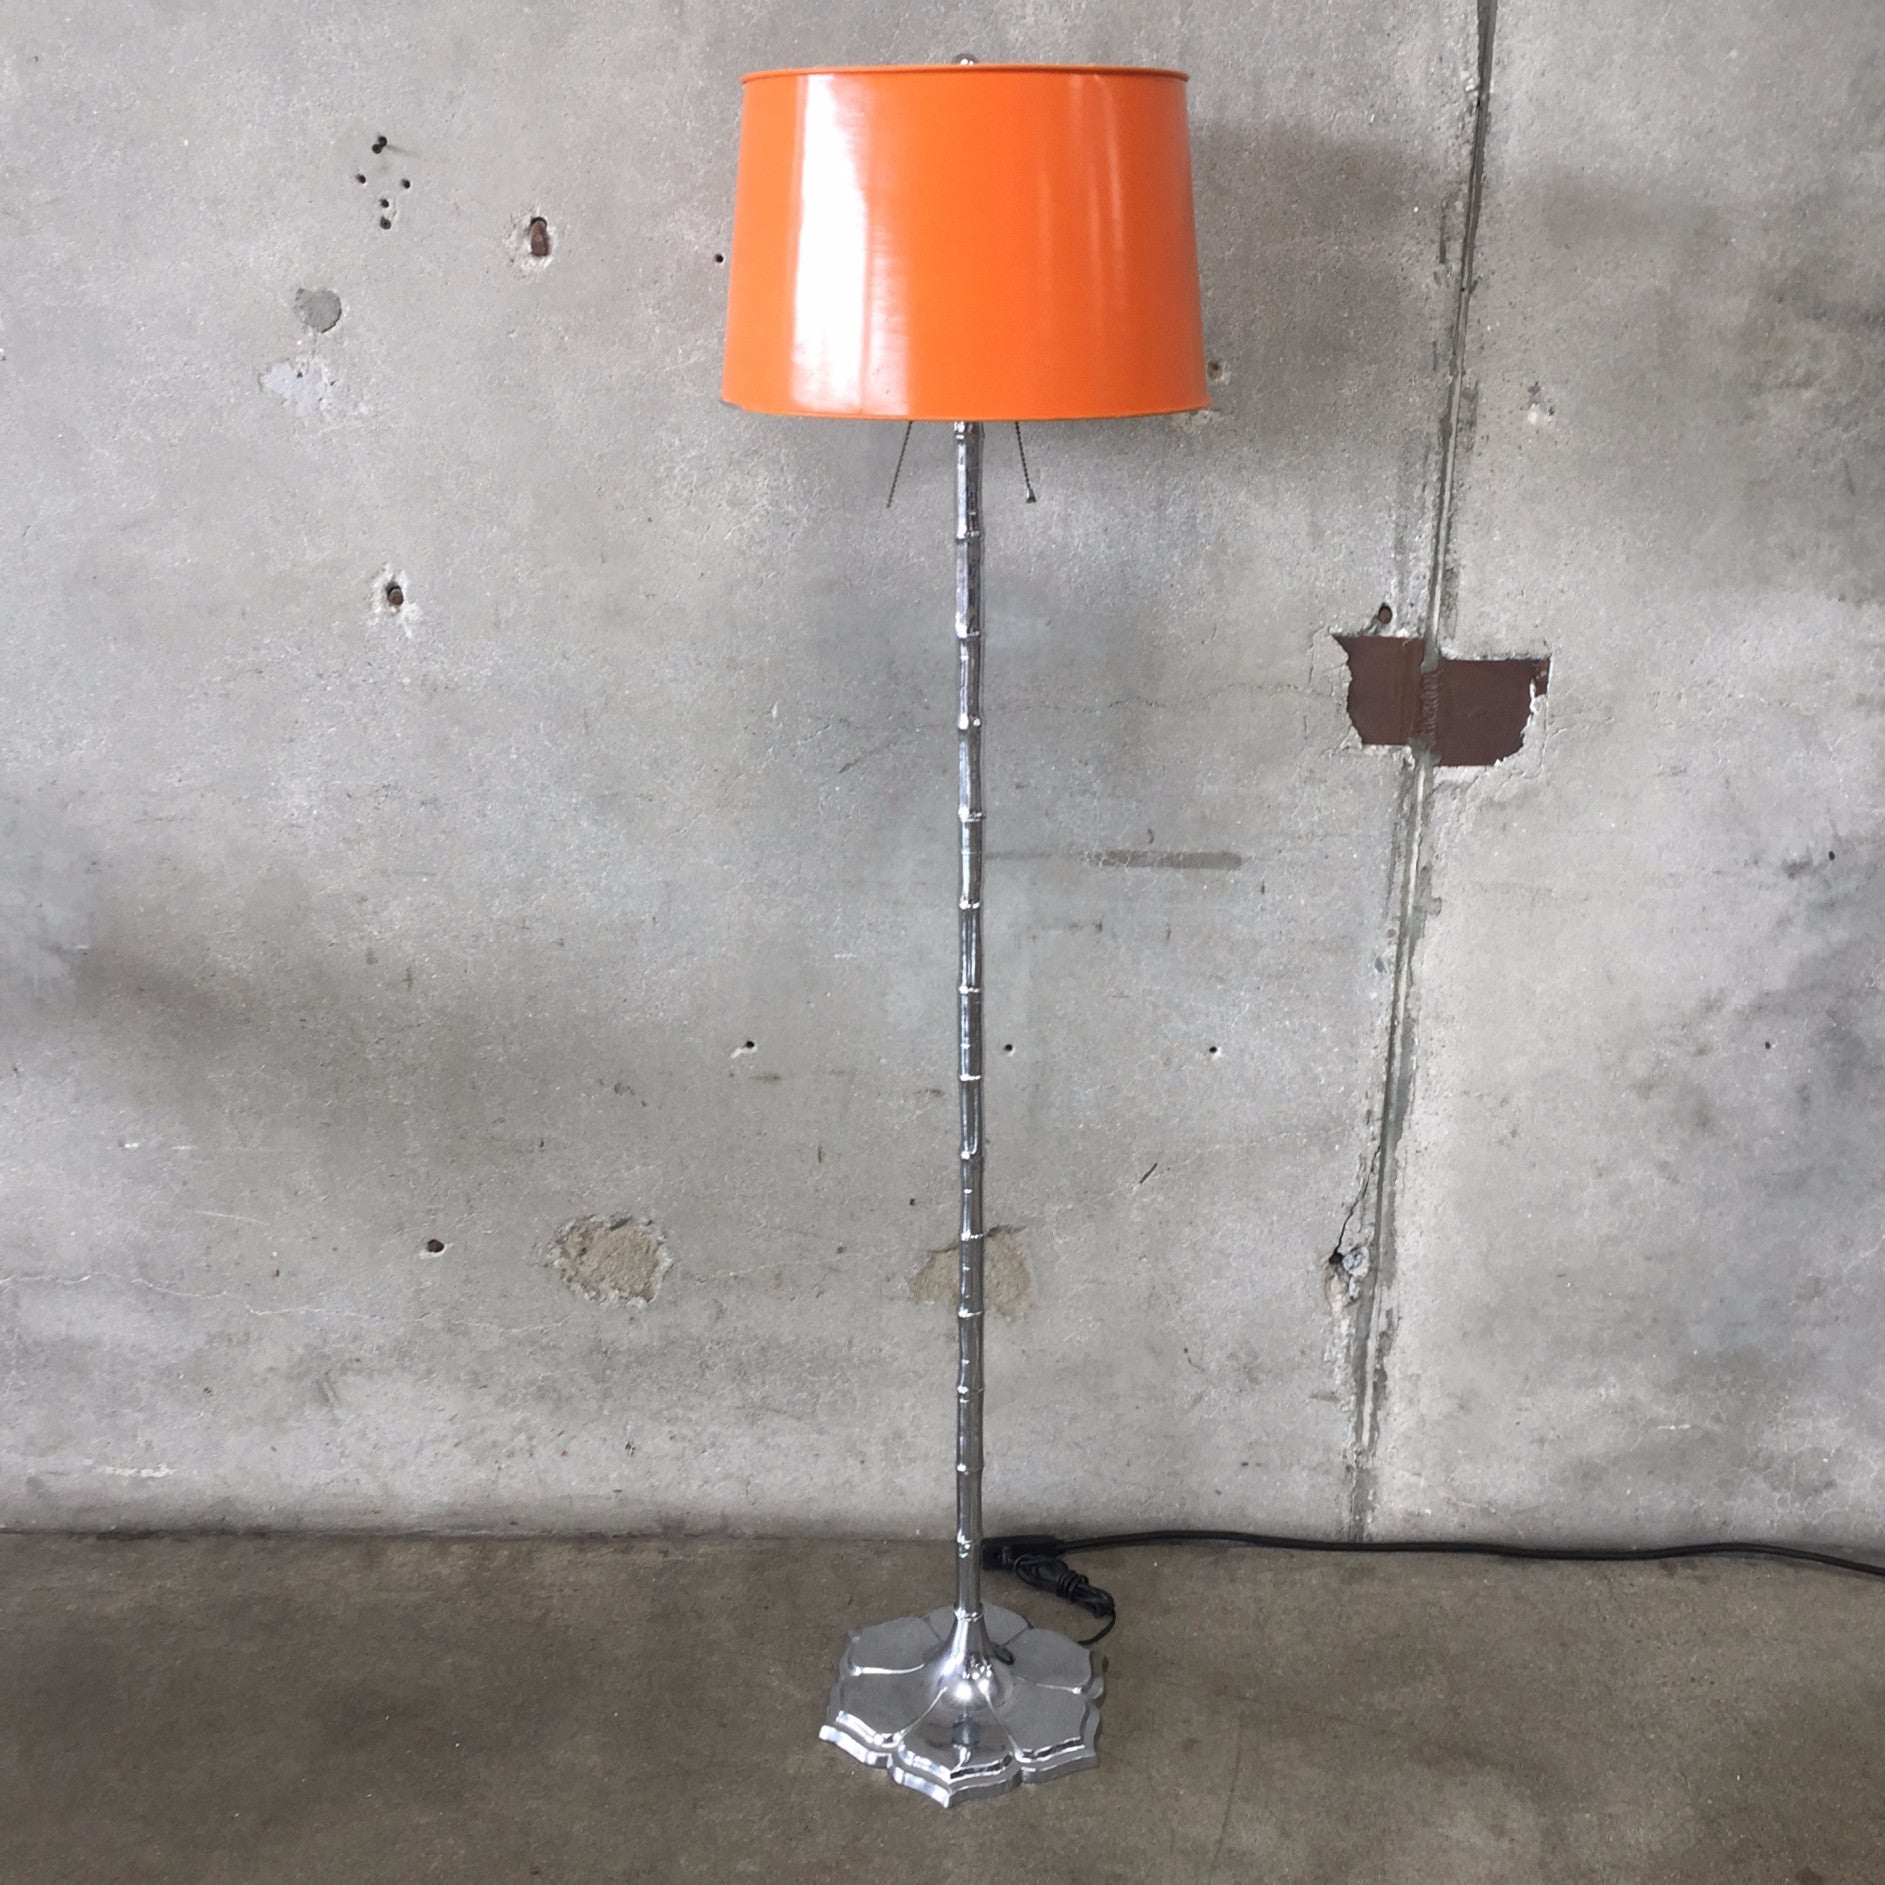 Hollywood Regency 1970 s Chrome Bamboo Floor Lamp – UrbanAmericana